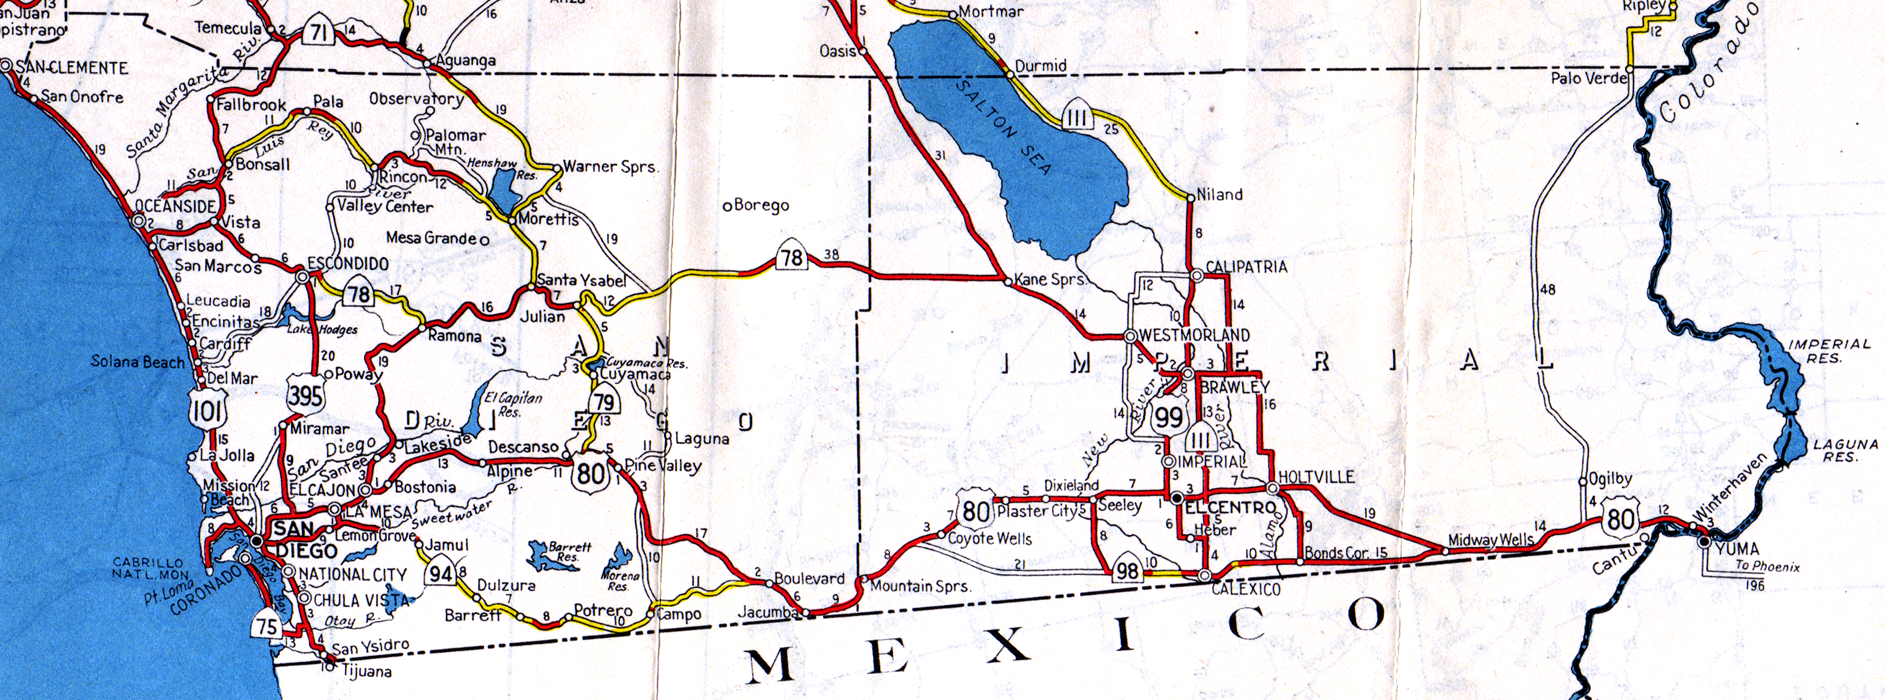 us map of interstate 80 image collections